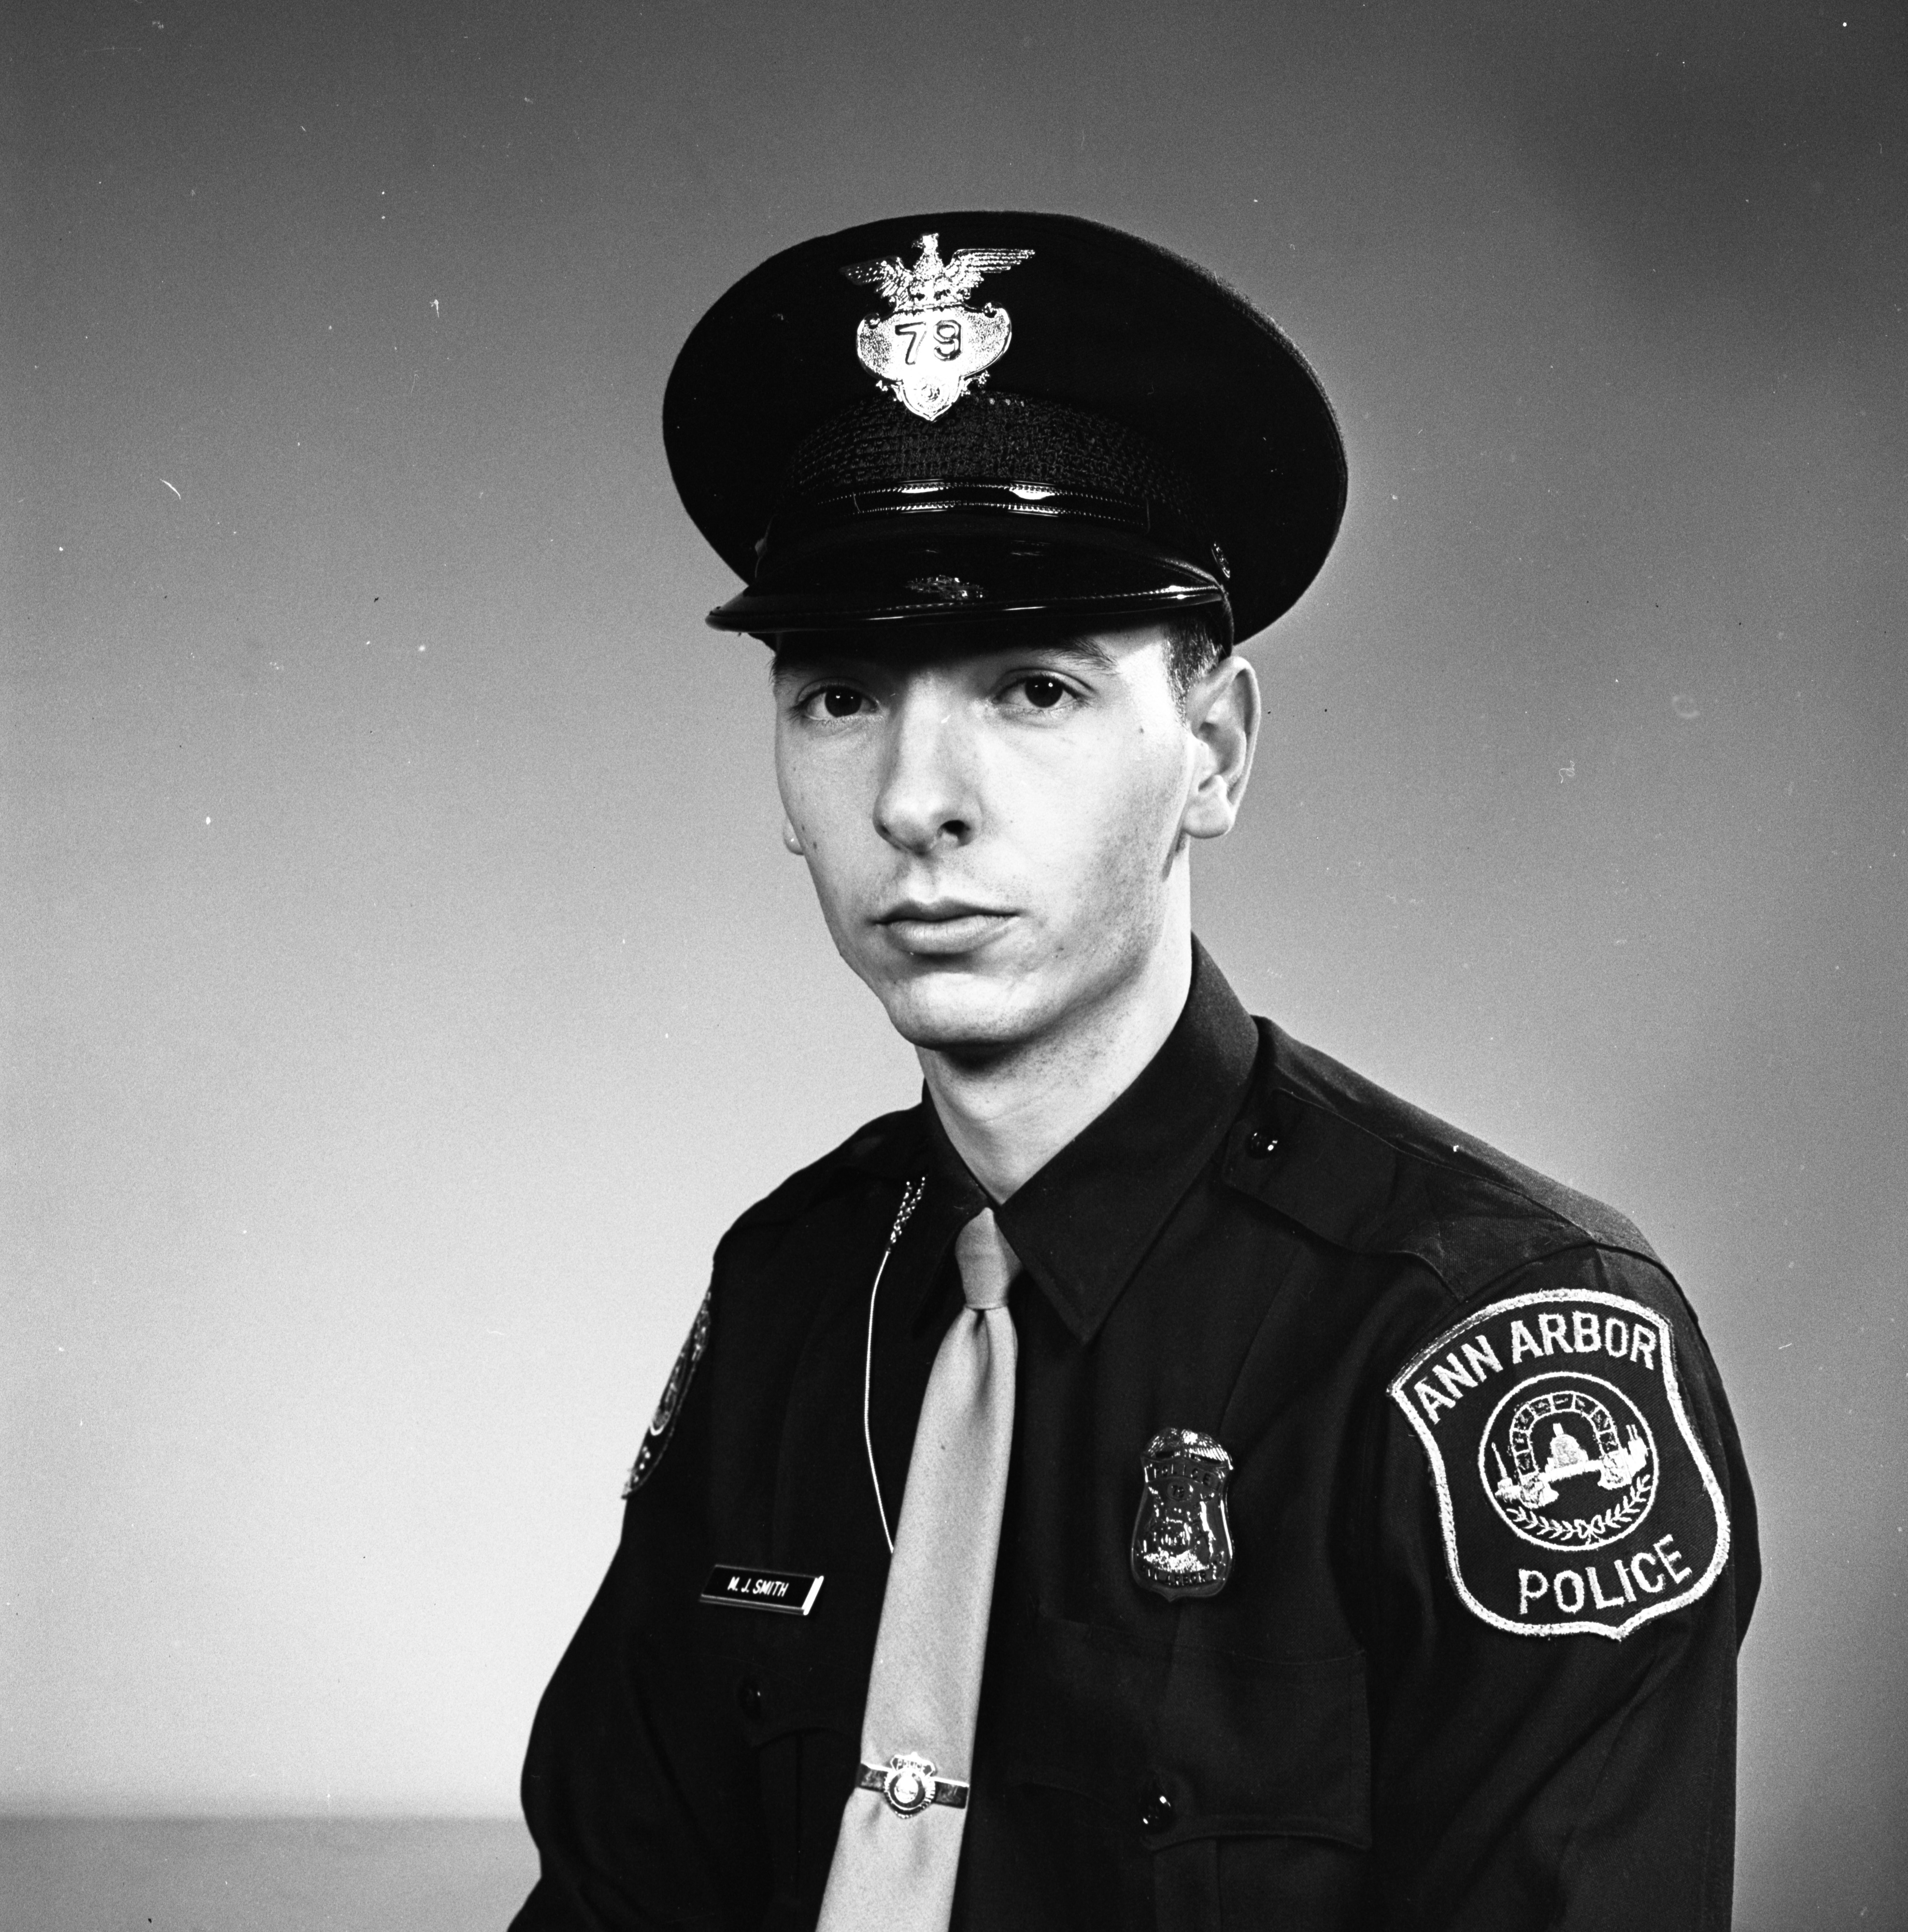 Ann Arbor Police Officer Michael J. Smith, November 1967 image